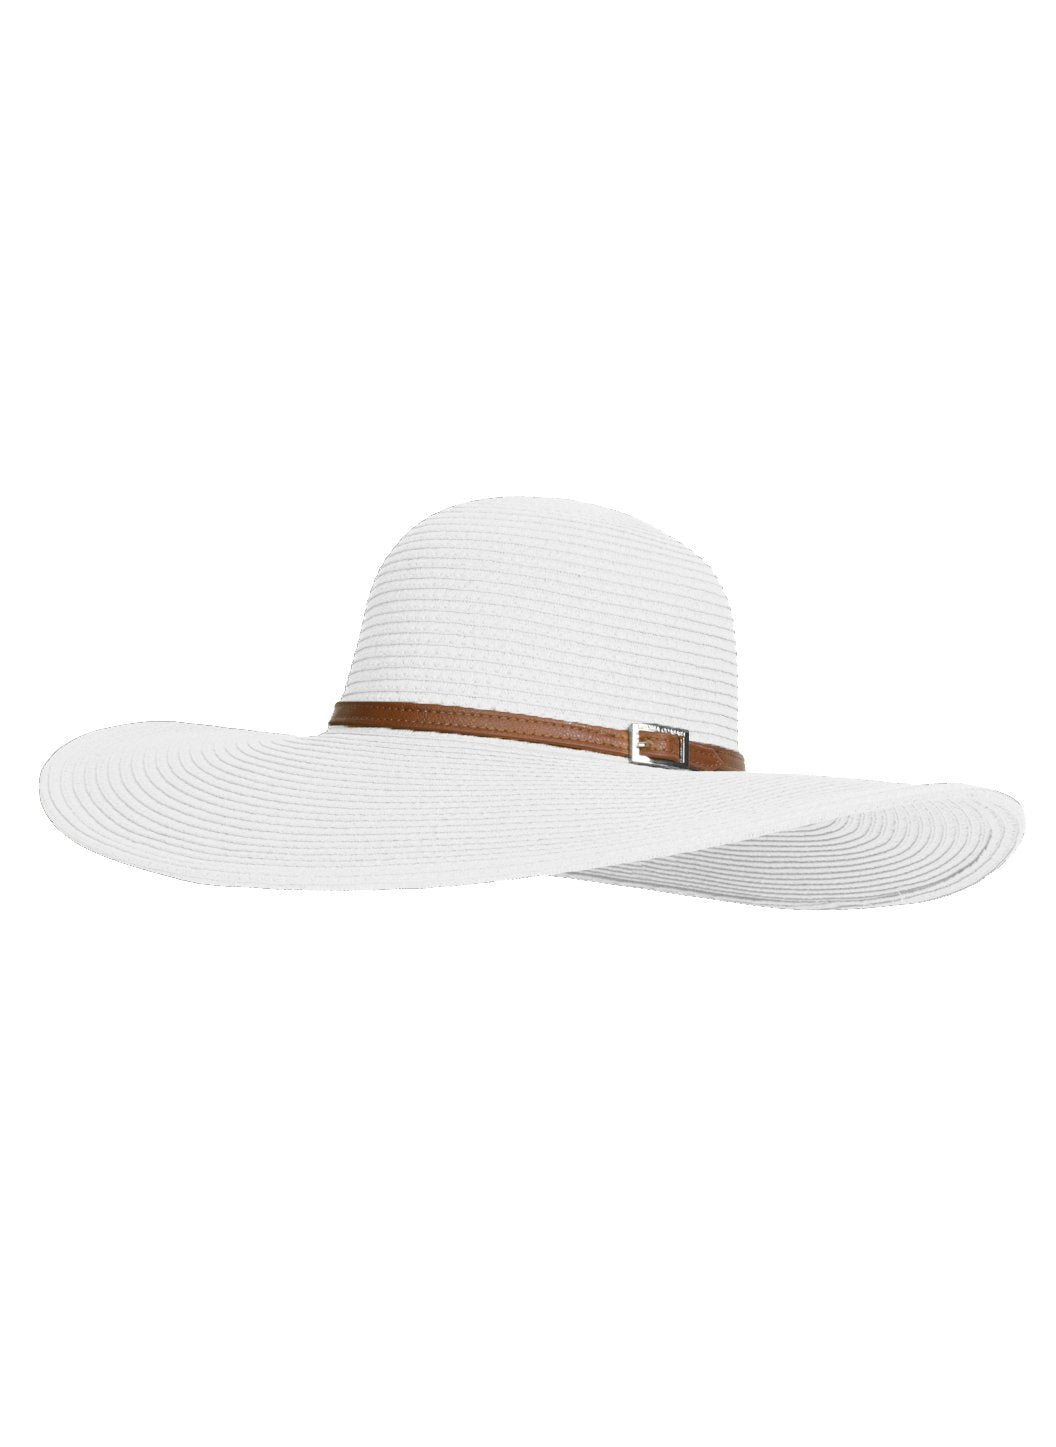 jemima hat white